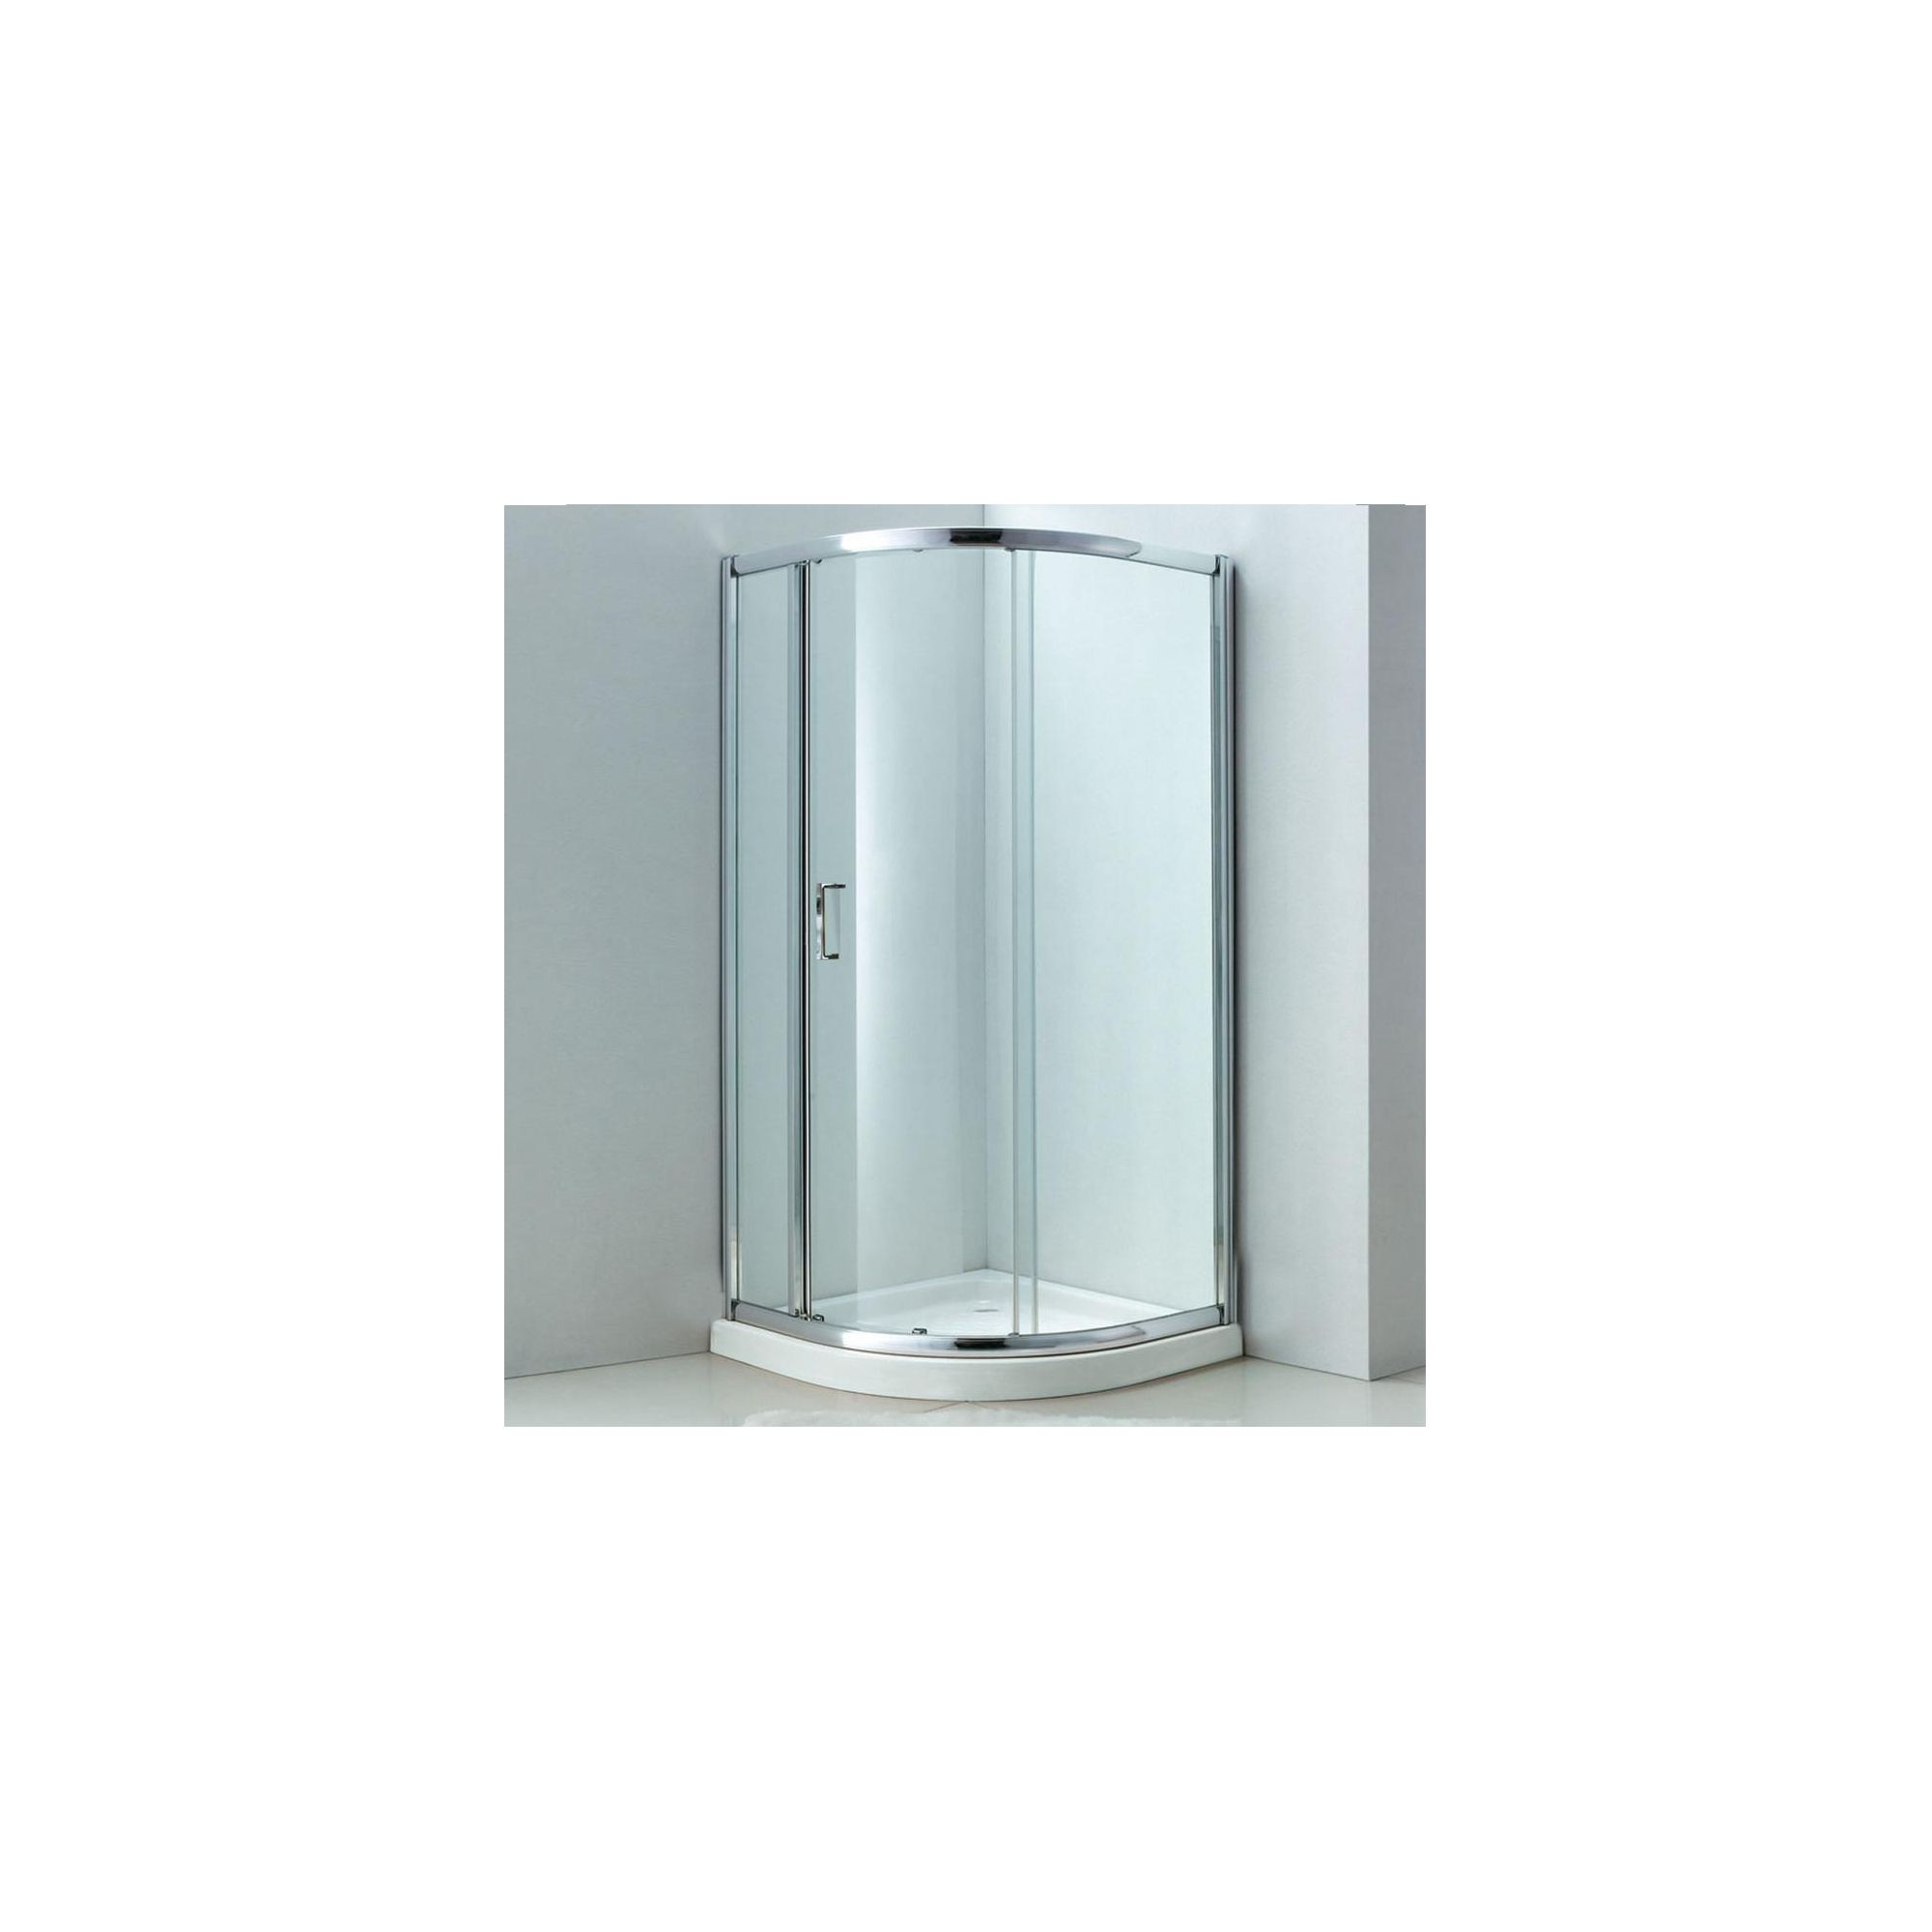 Duchy Style Single Offset Quadrant Door Shower Enclosure, 1200mm x 900mm, 6mm Glass, Low Profile Tray, Left Handed at Tesco Direct